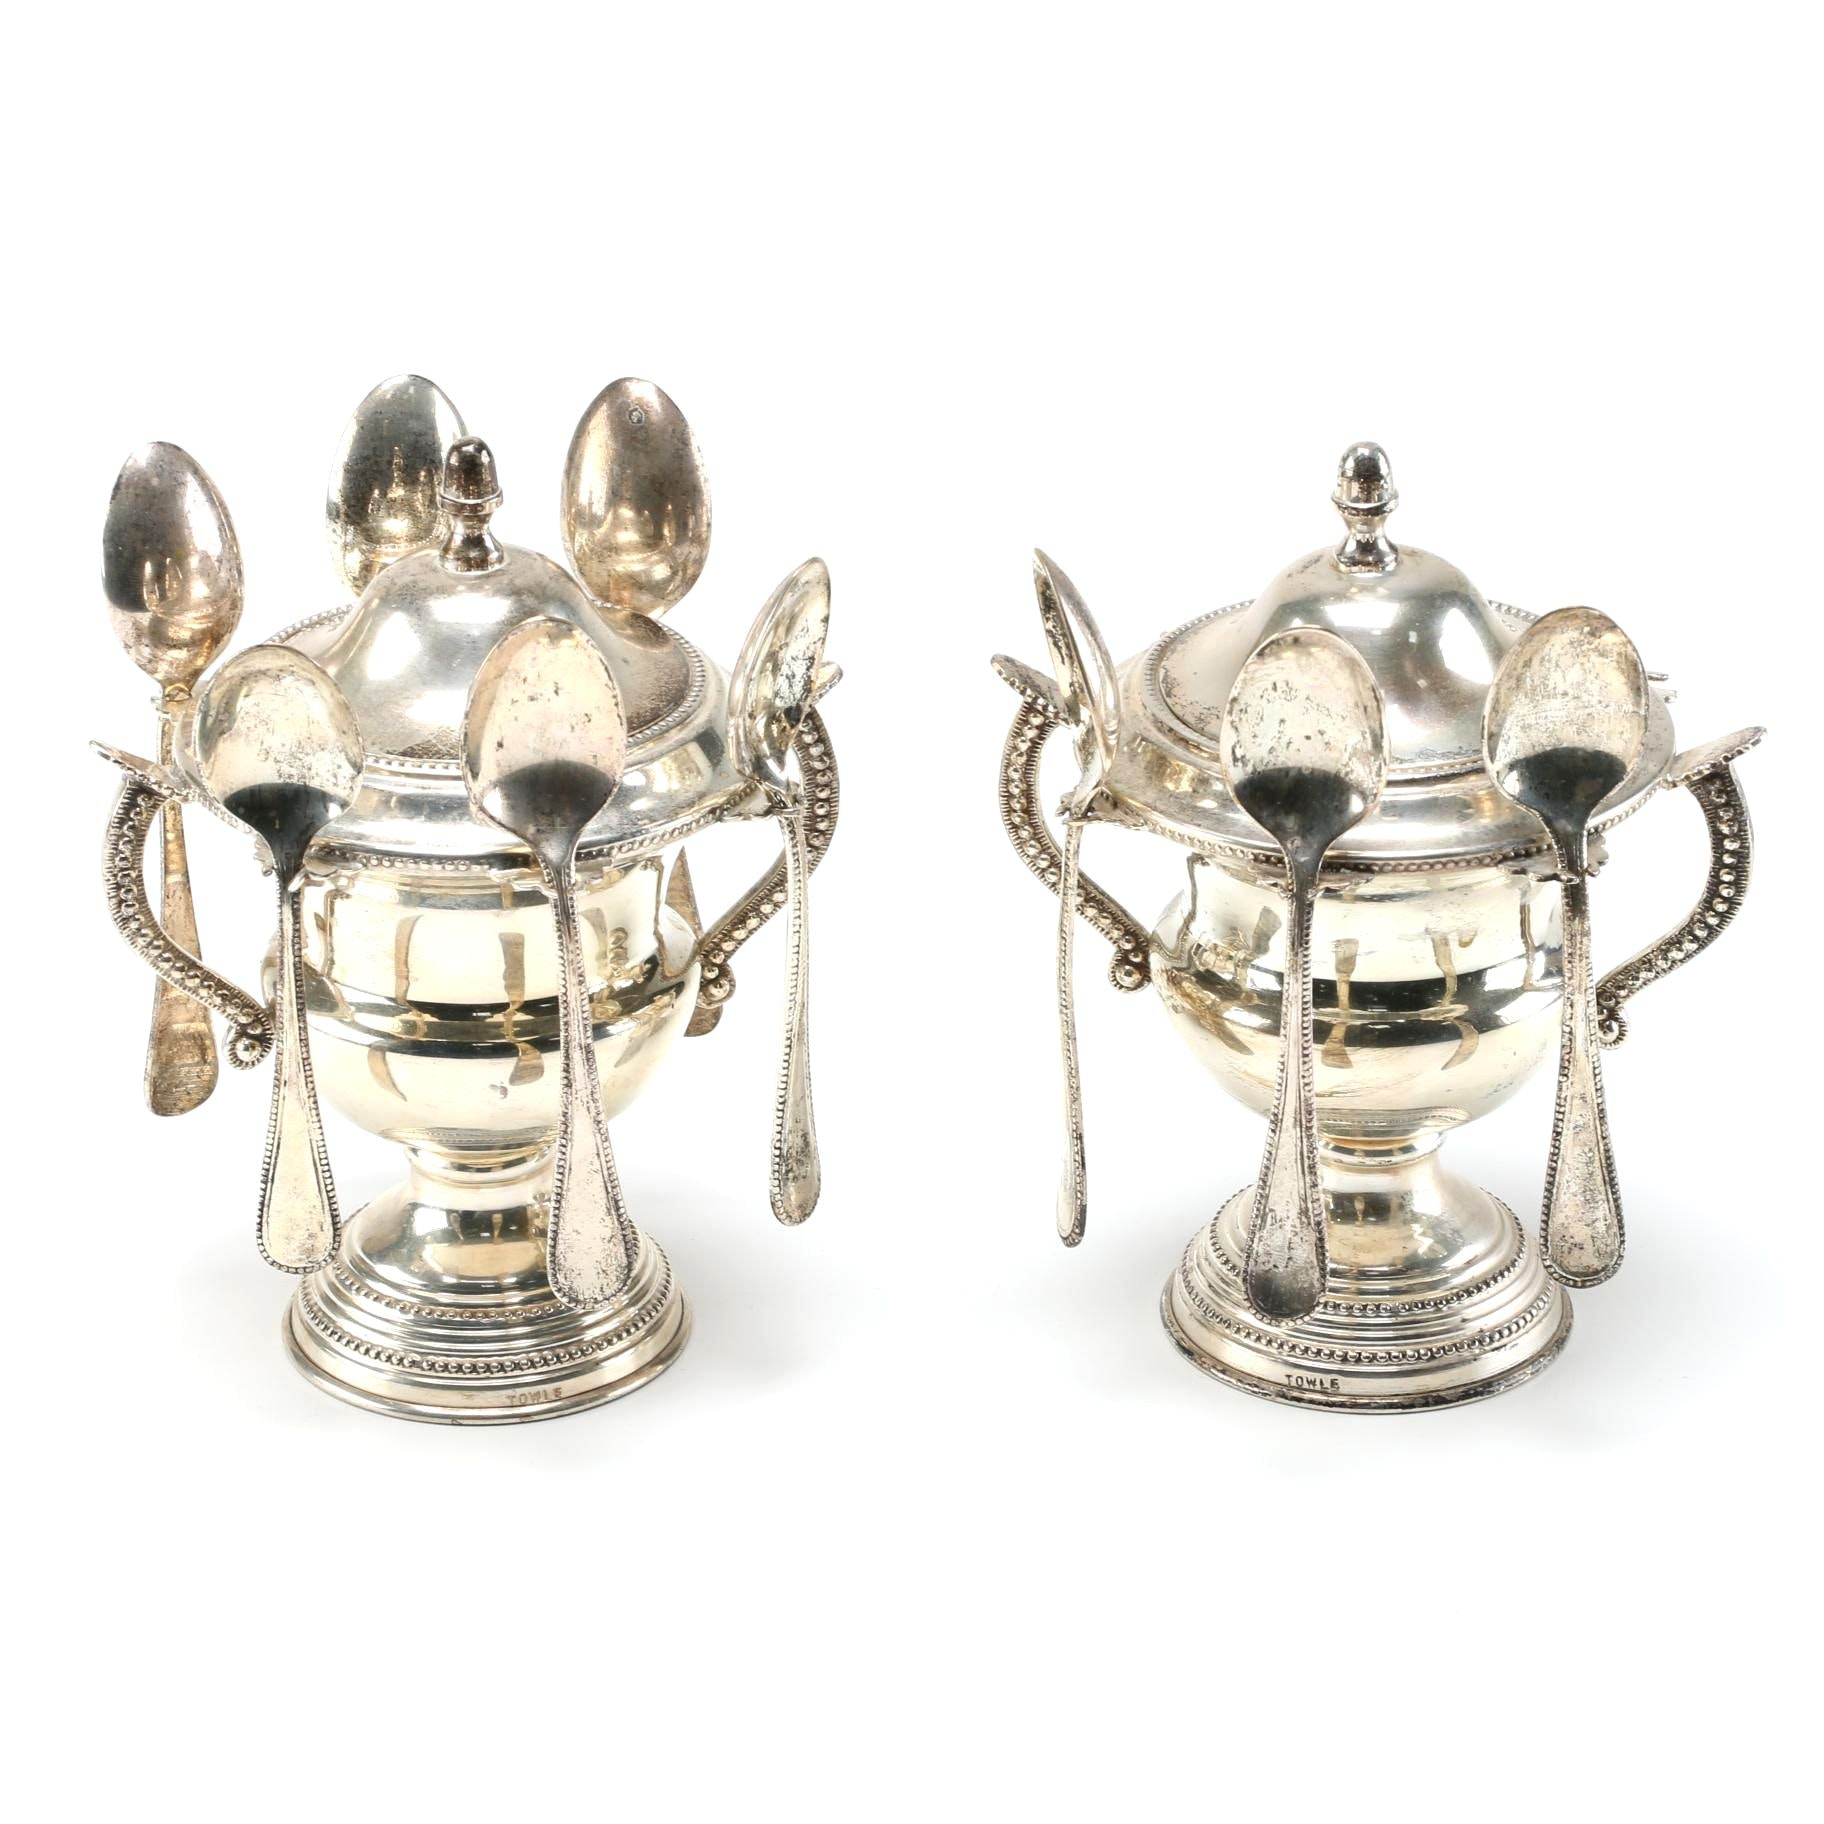 Towle Silver Plate Spooners and Spoons